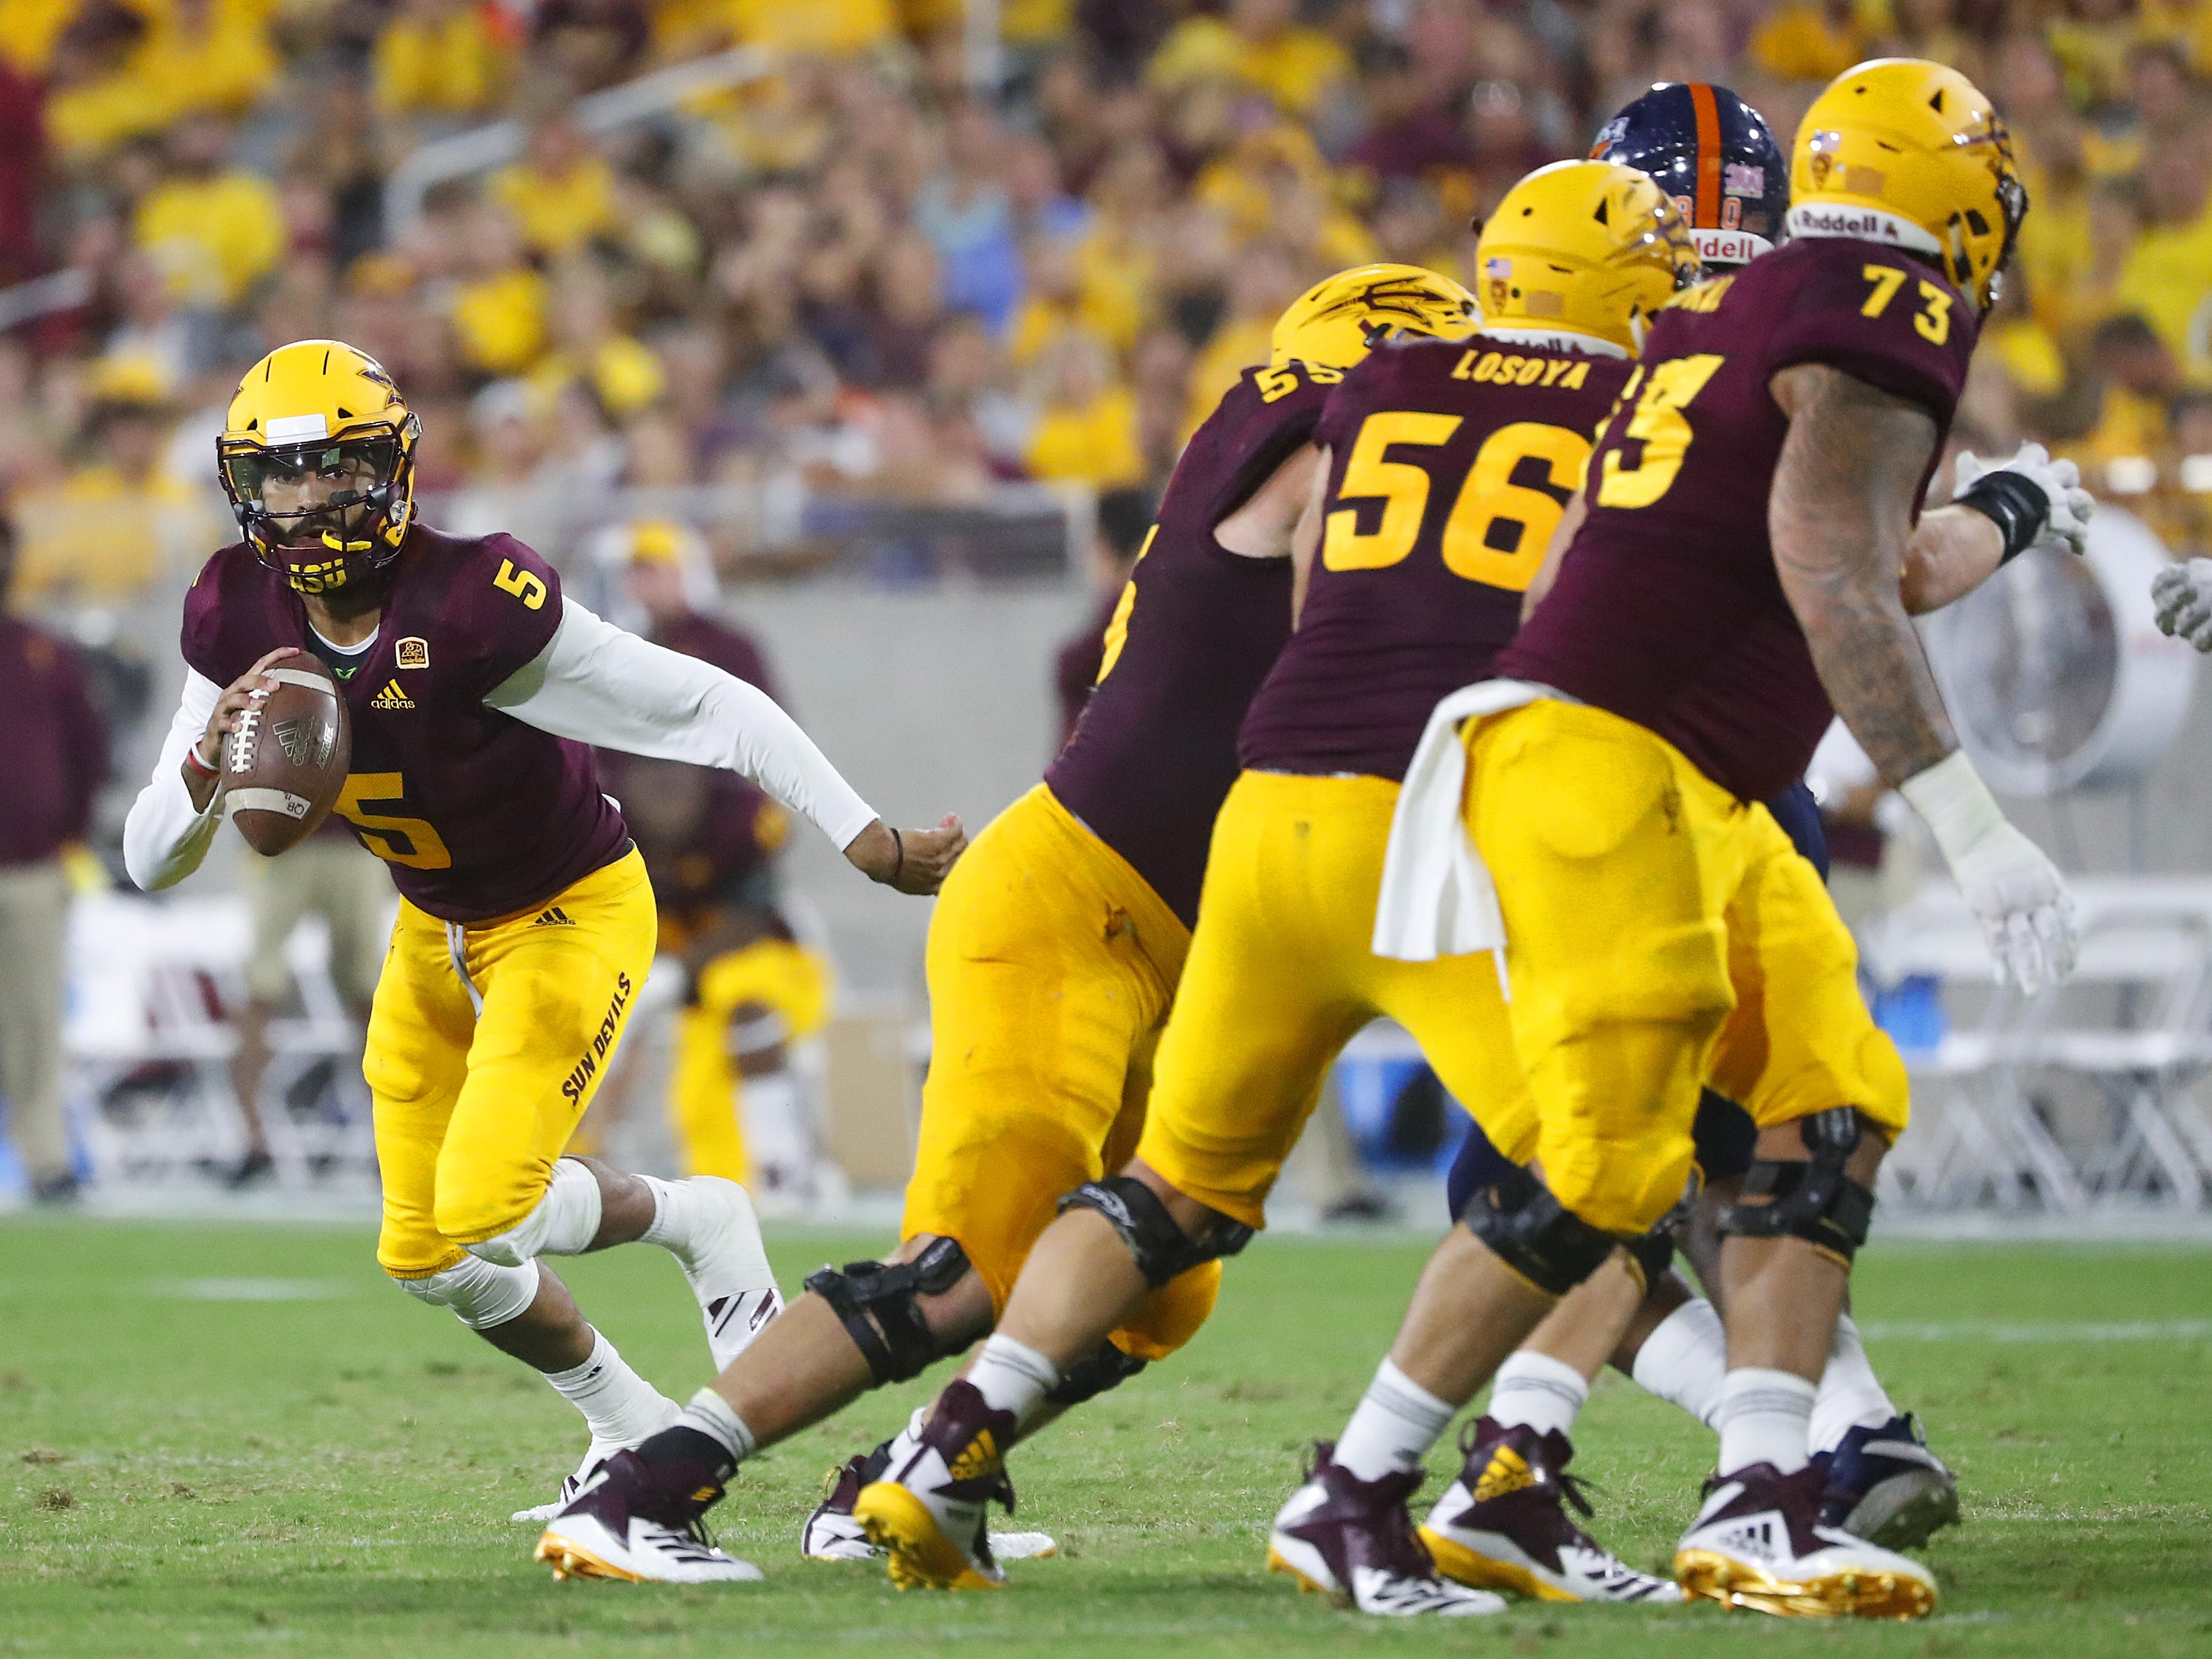 Arizona State Sun Devils quarterback Manny Wilkins (5) scrambles against UTSA during the second half at Sun Devil Stadium in Tempe, Ariz. on Sept. 1, 2018.